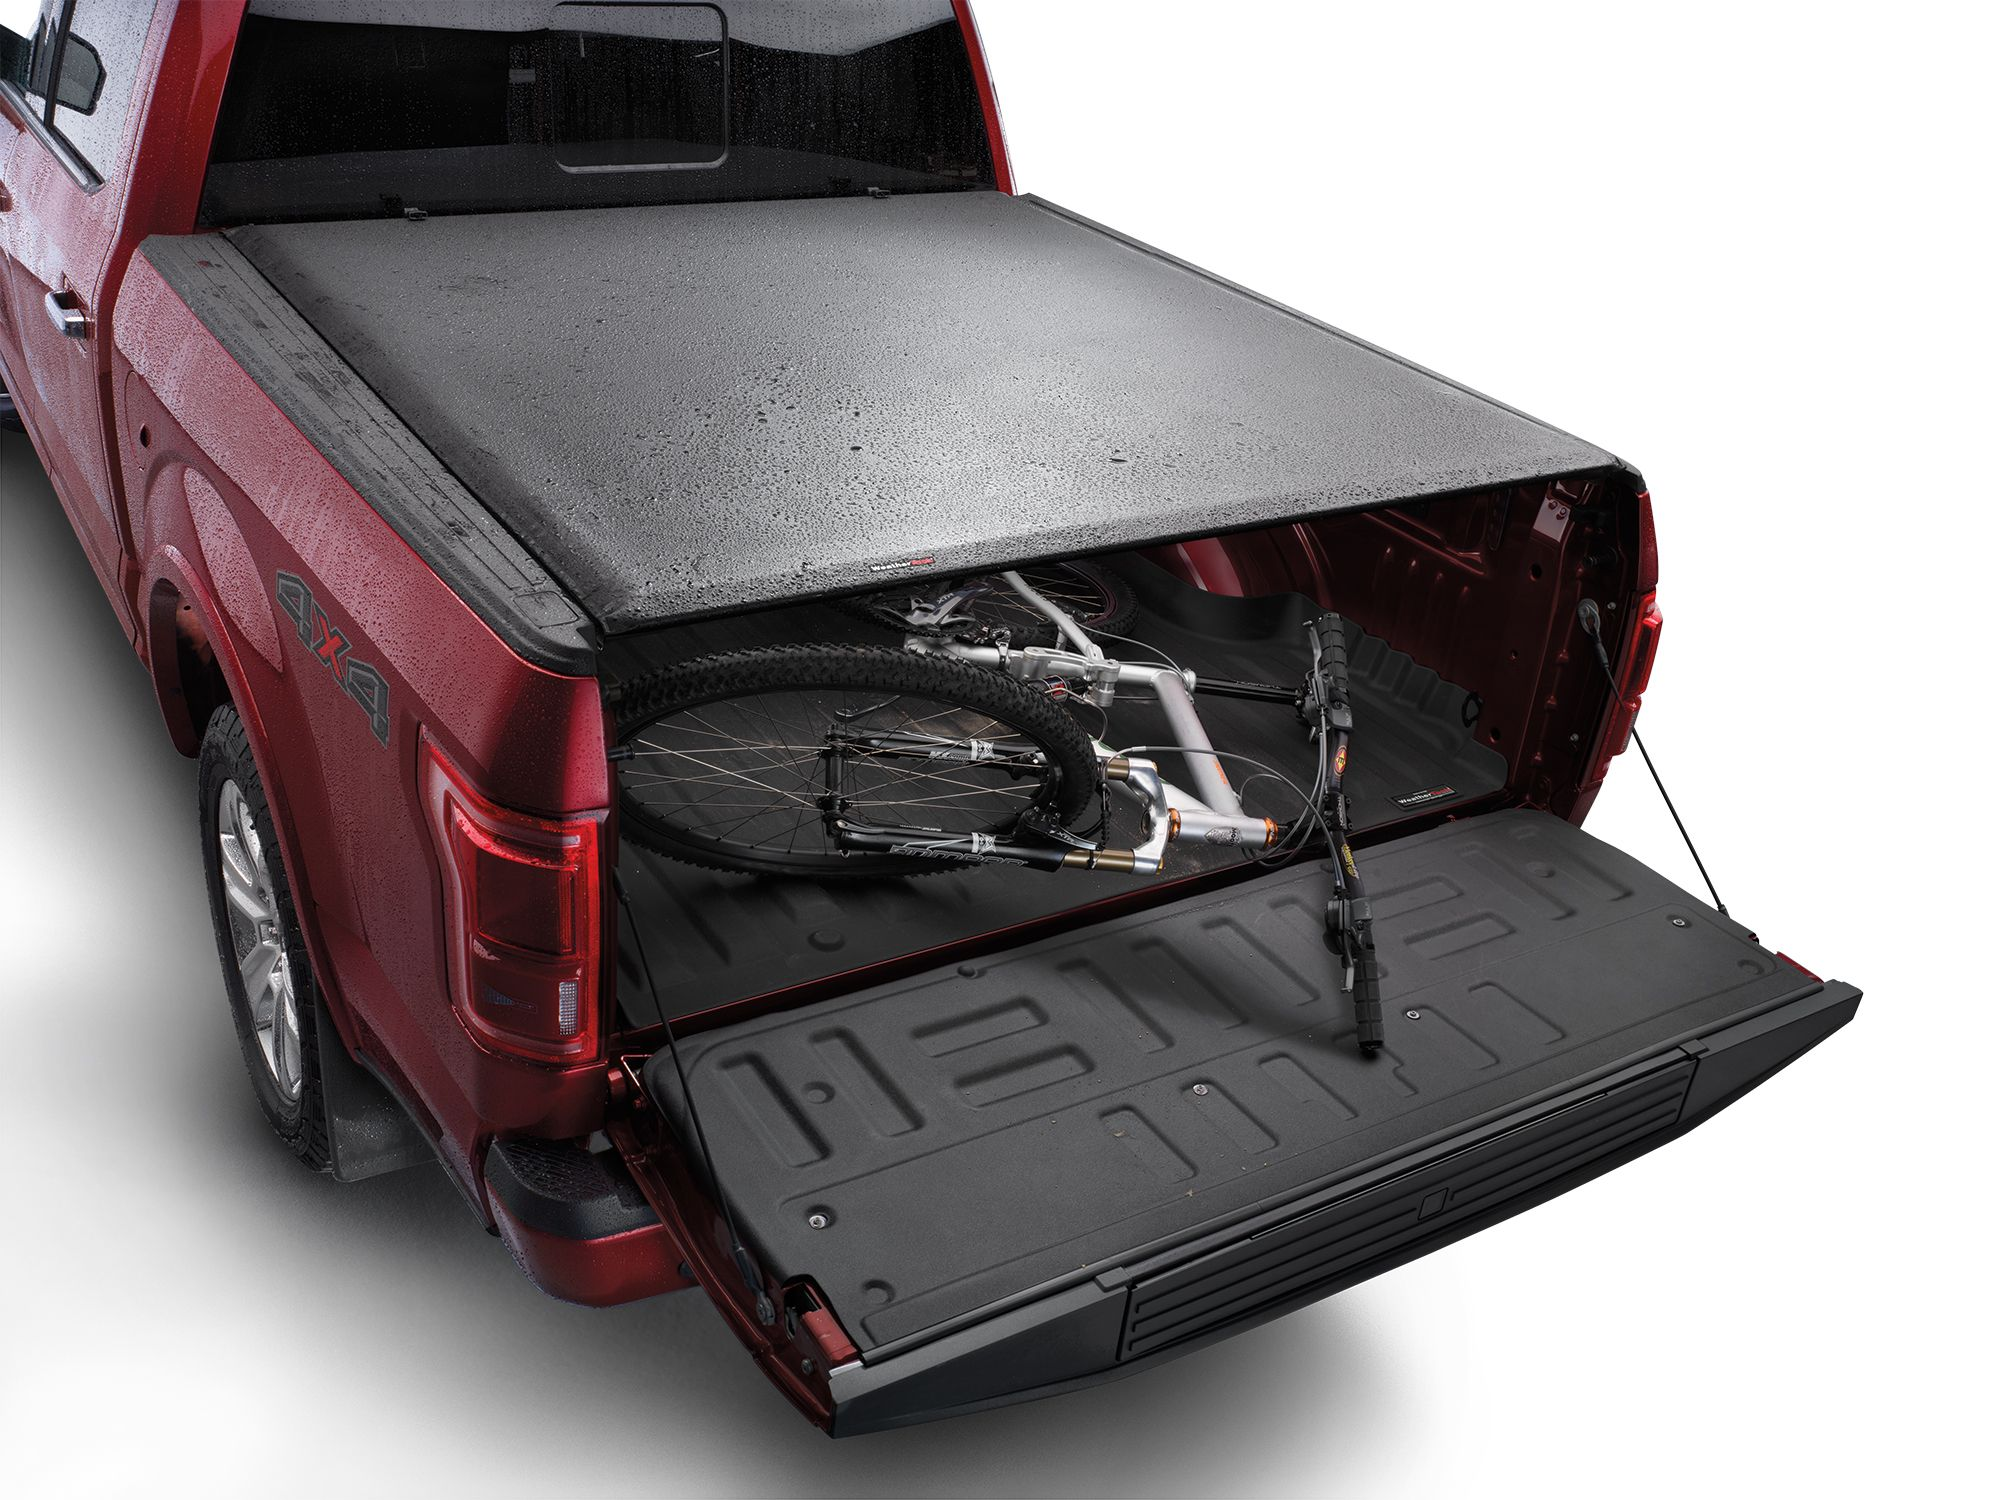 The custom fit roll up bed cover for pick up trucks is a tough water resistant commercial grade vinyl cover that protects your cargo from the toughest of